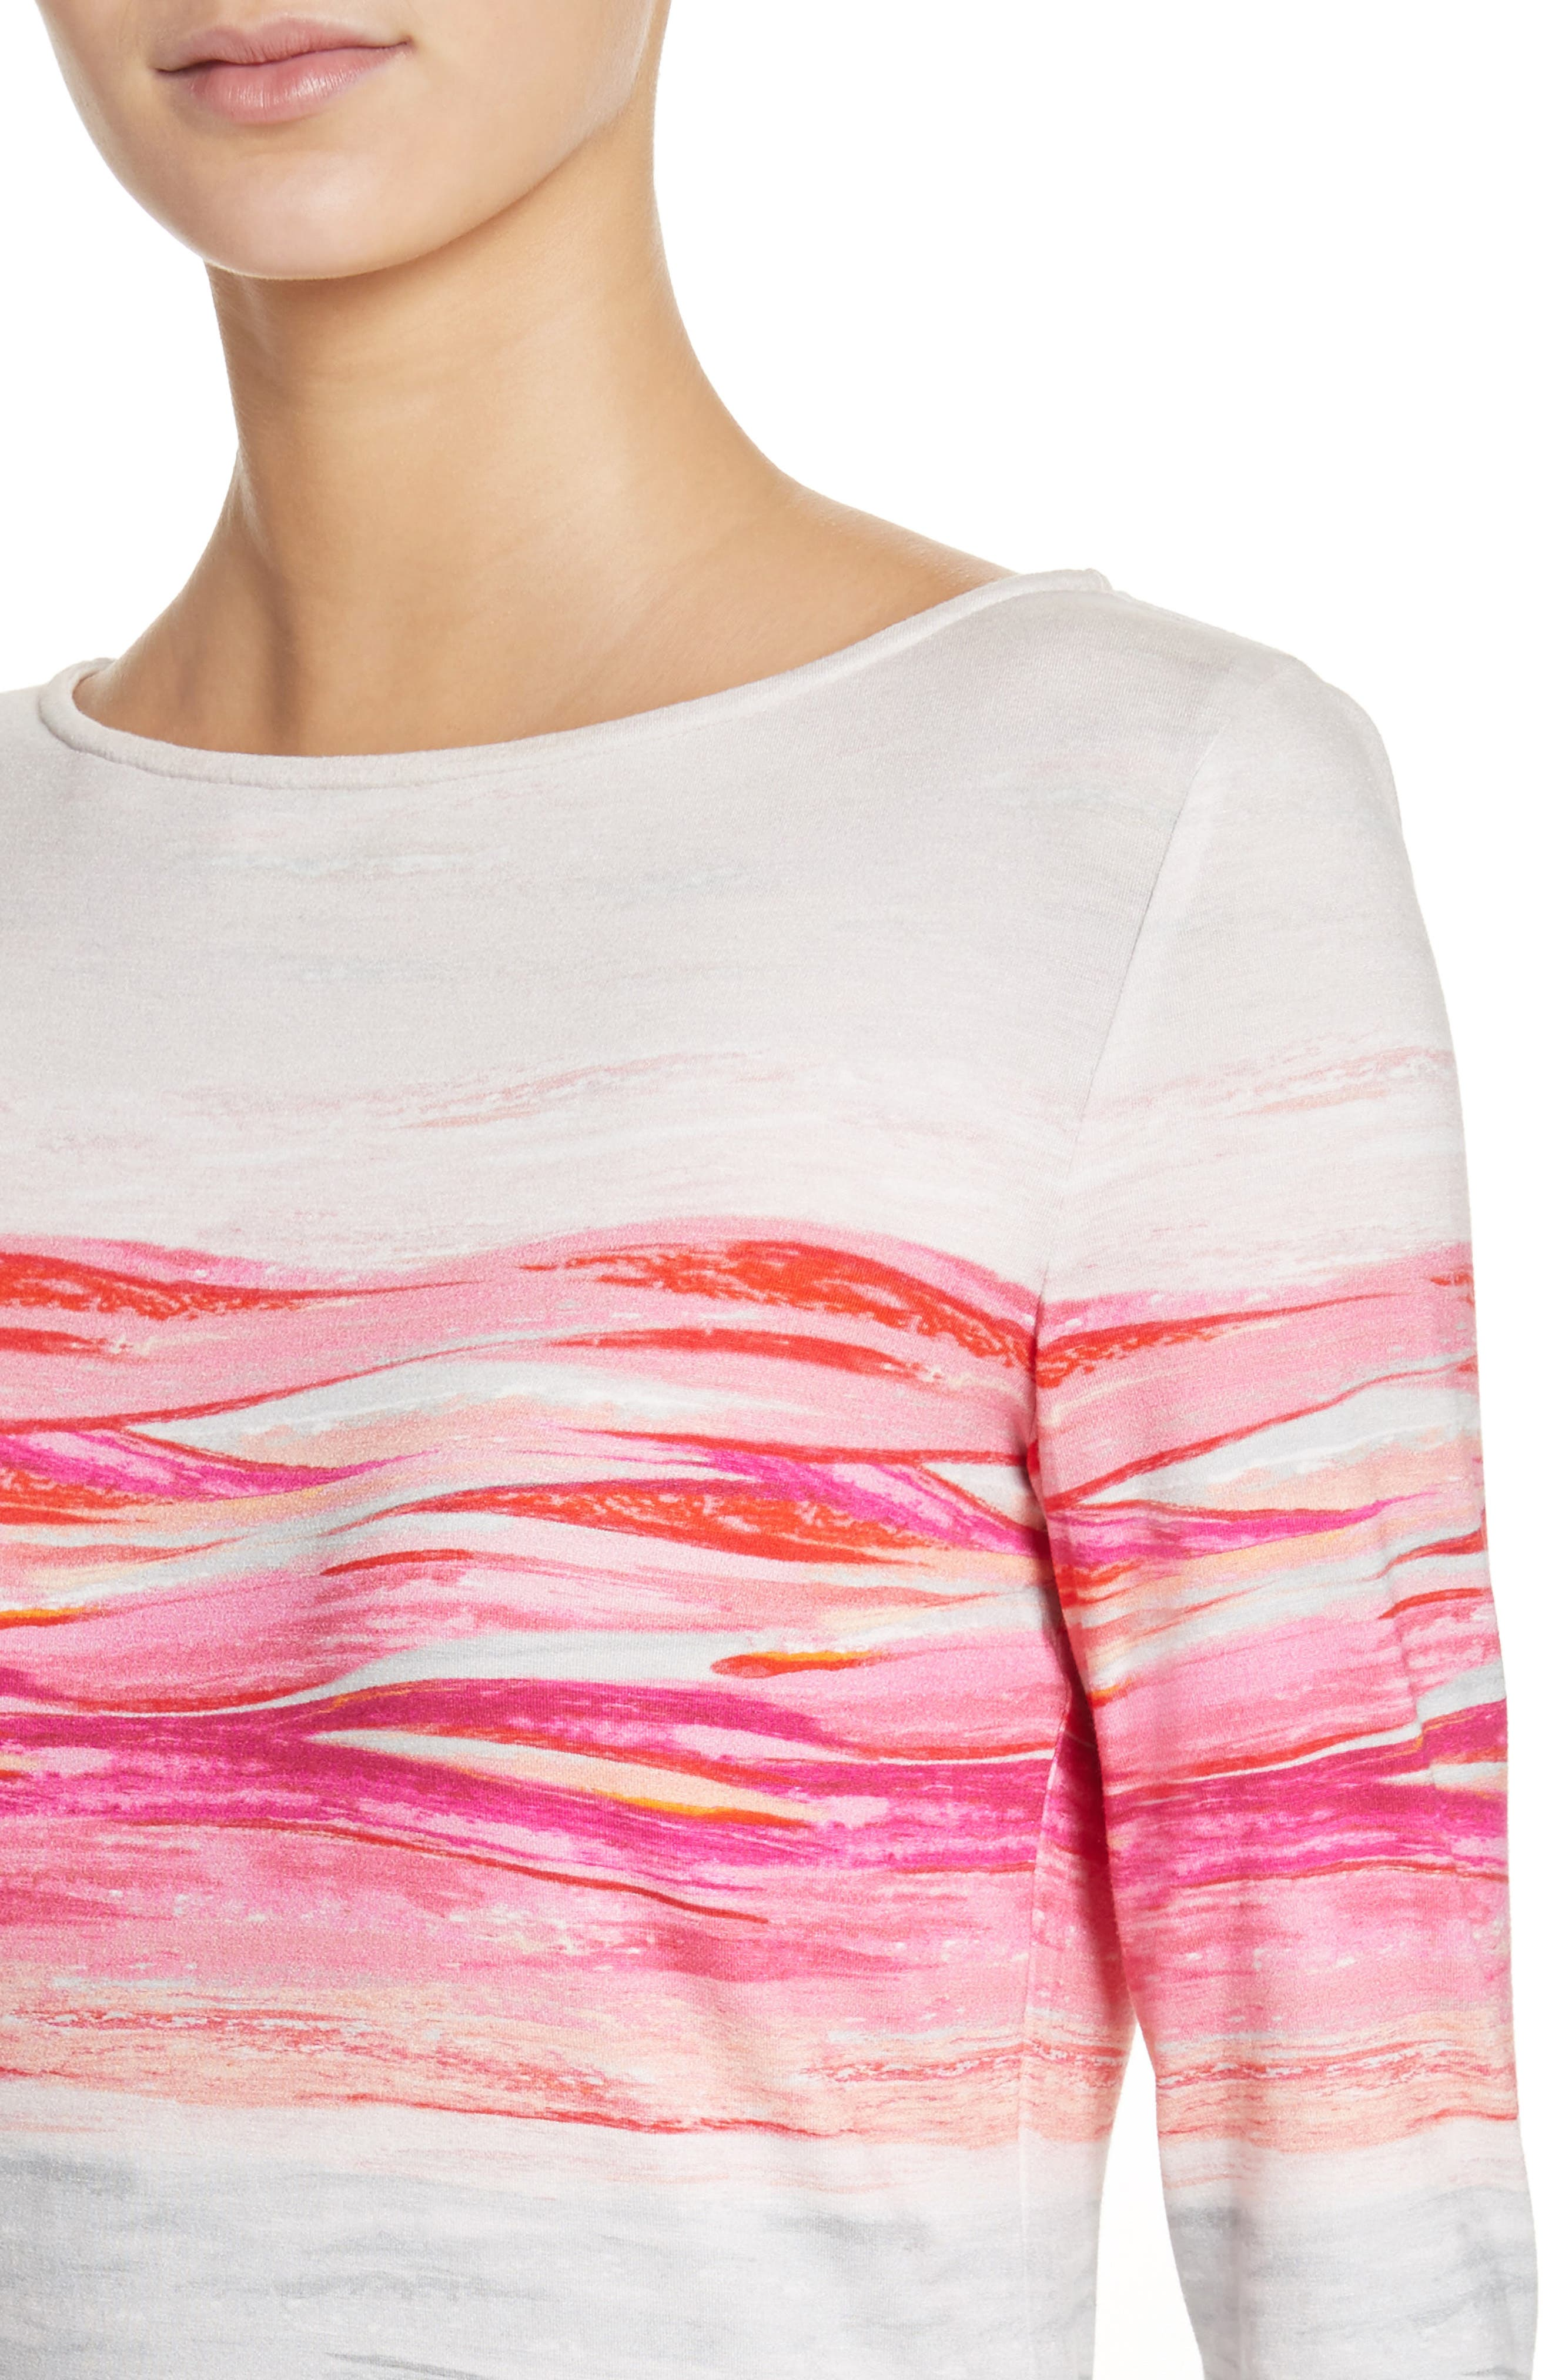 Textured Brushstroke Print Jersey Top,                             Alternate thumbnail 4, color,                             Bright Coral Multi